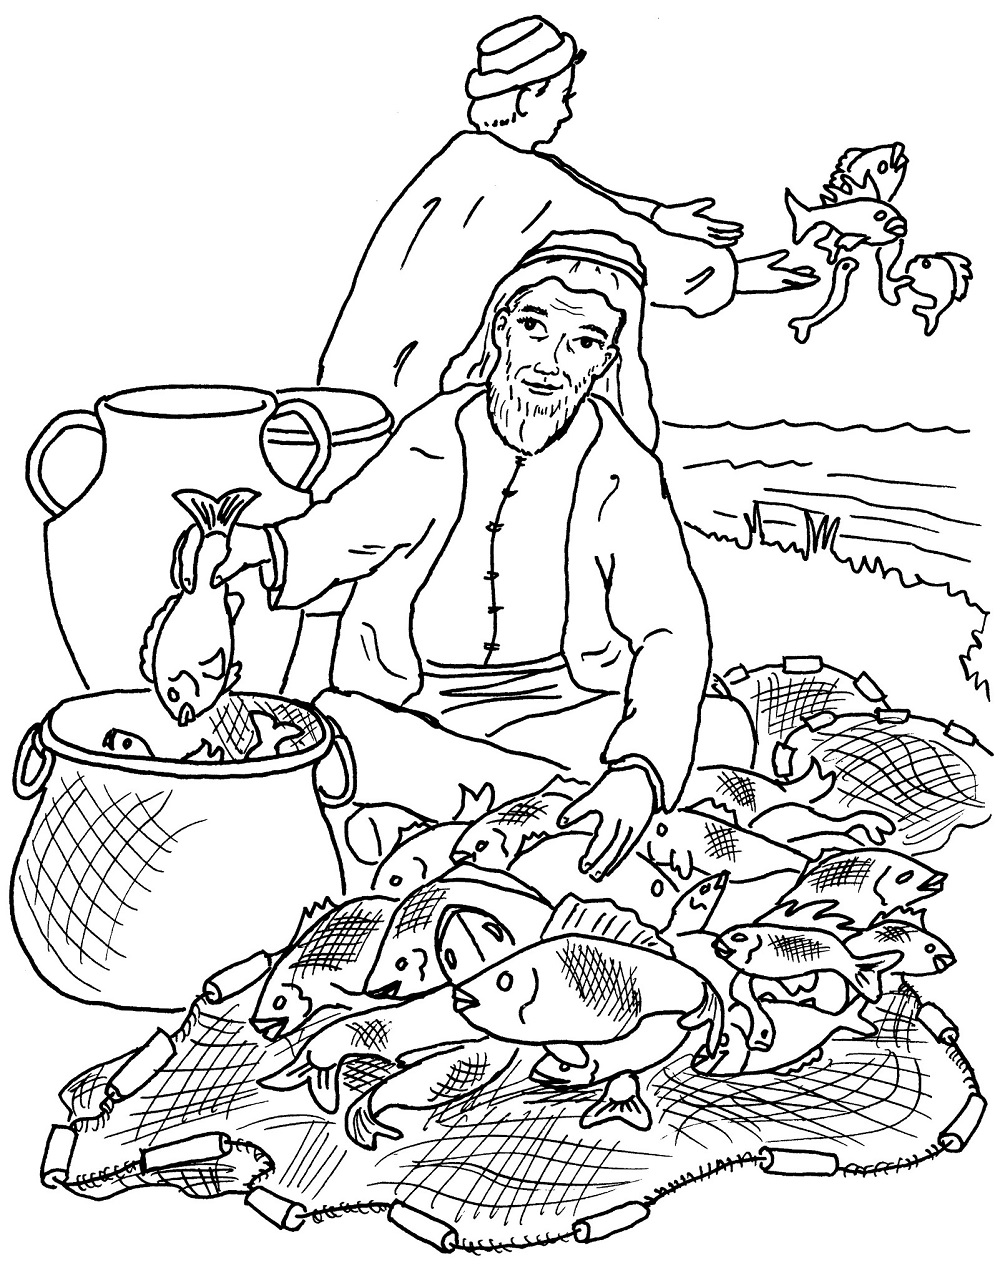 fishers of men coloring page selection